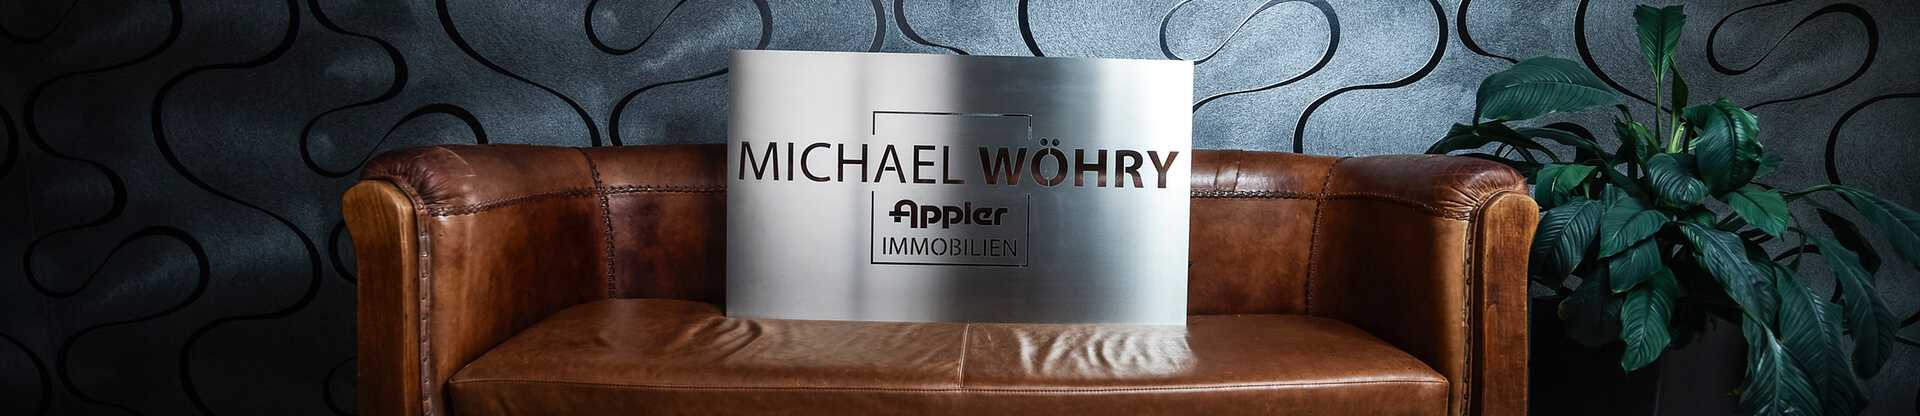 Ledercouch mit Logo Appler + Wöhry Immobilien